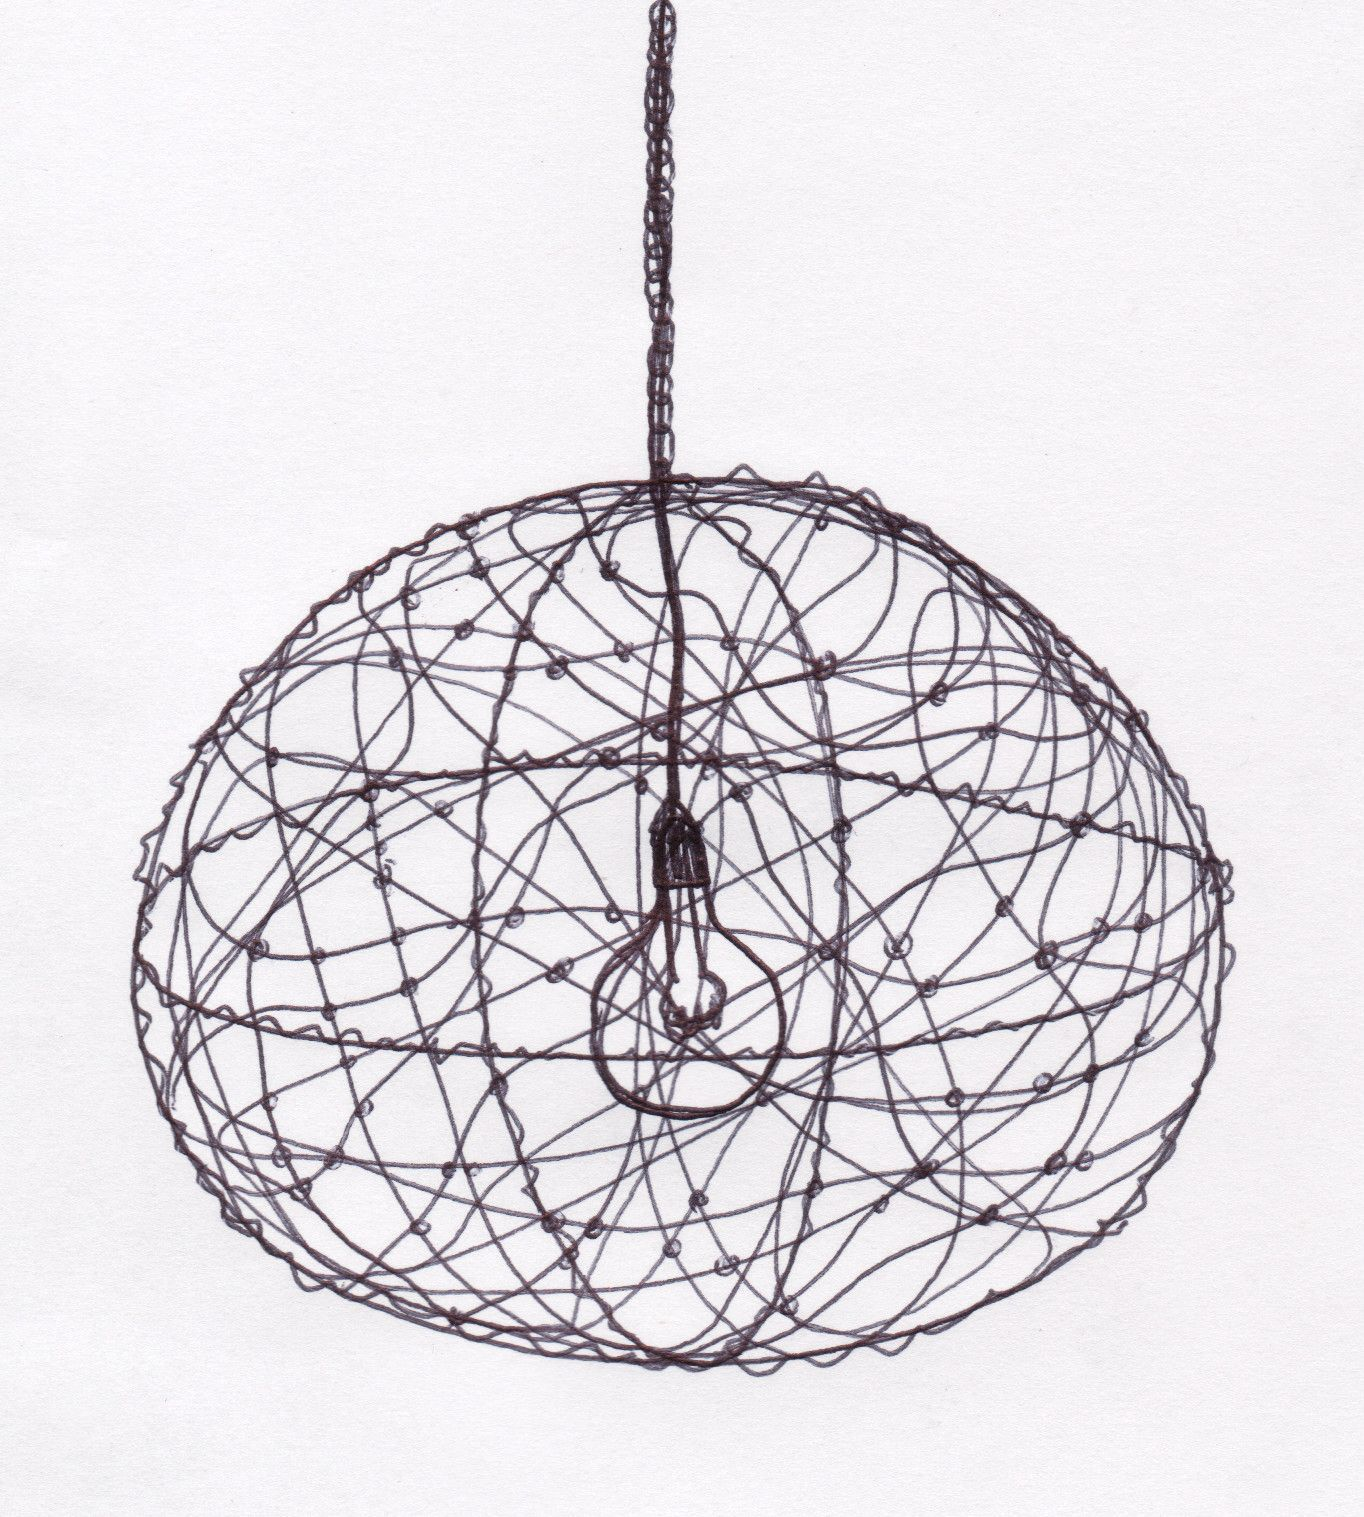 Diy for this beautiful wire lampshade bails pinterest wire diy for this beautiful wire lampshade greentooth